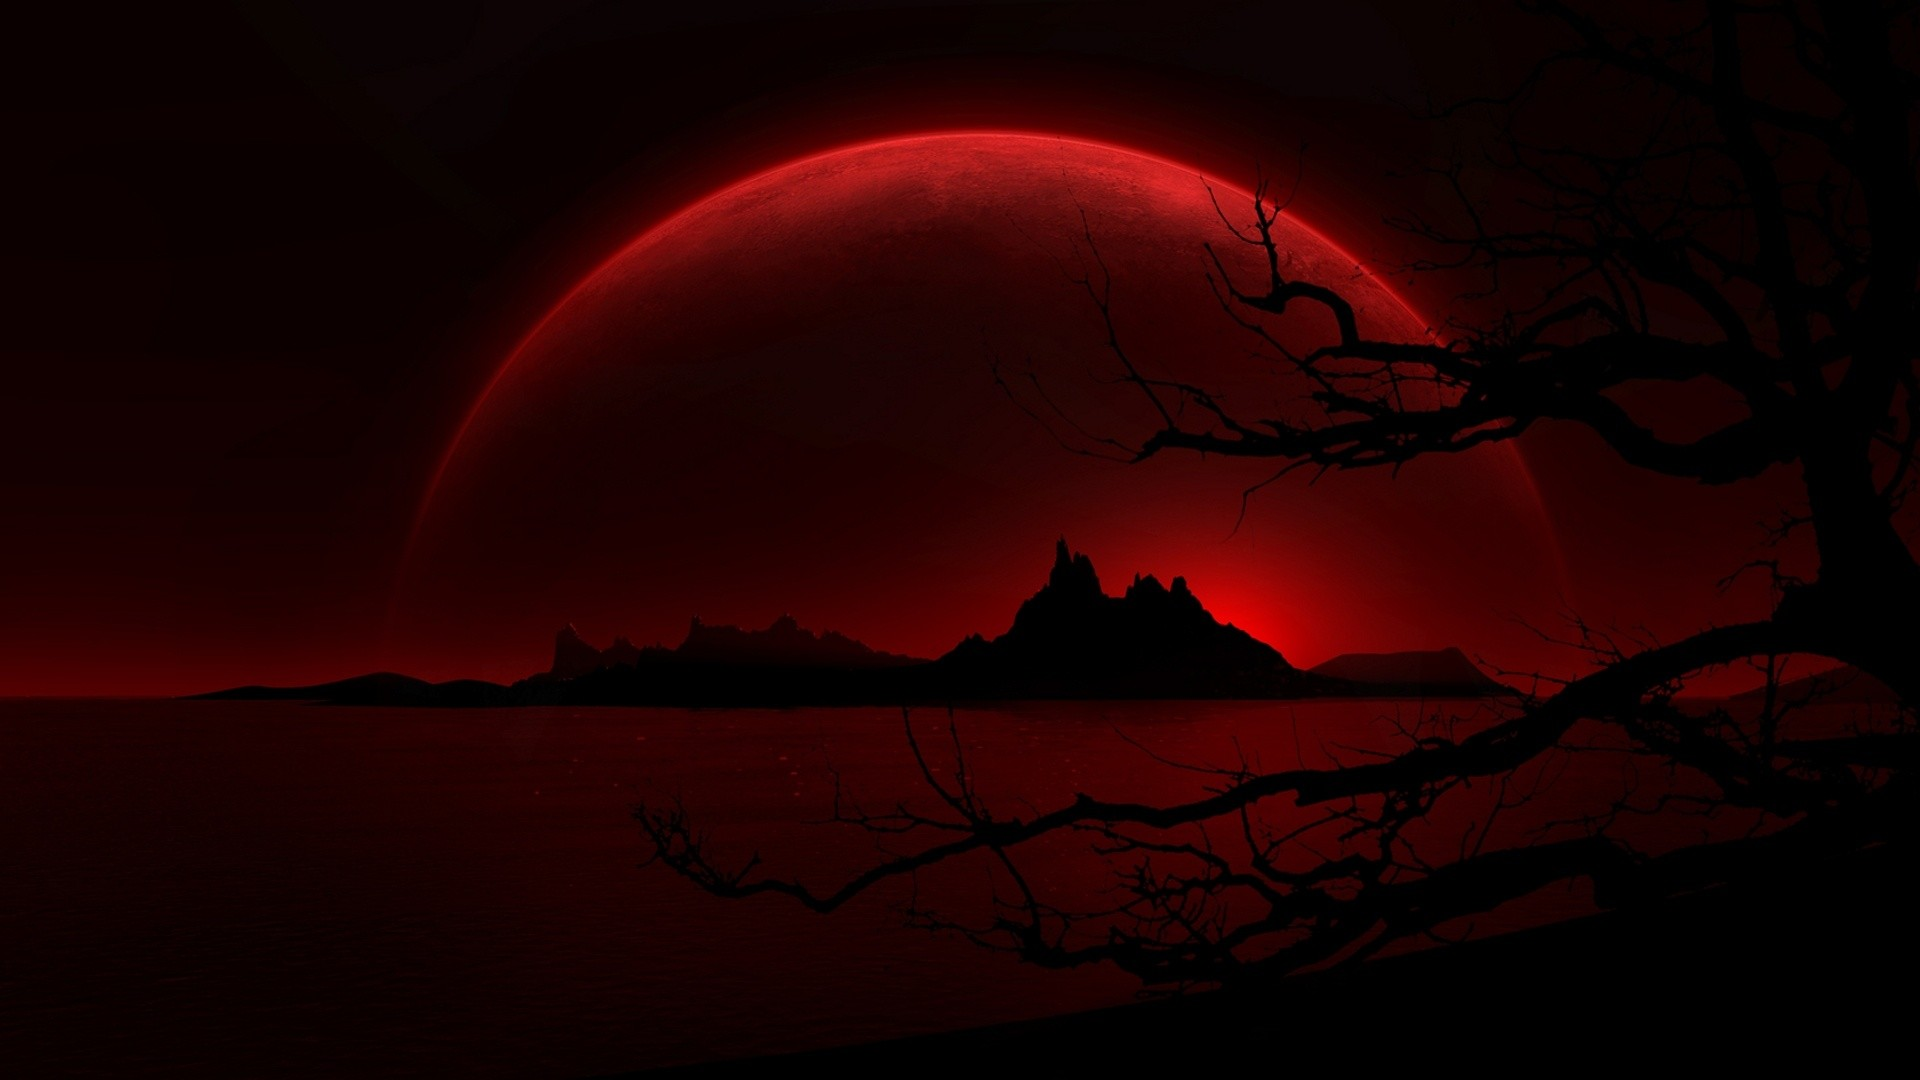 Res: 1920x1080, Red-moon-wallpaper-3443-hd-wallpapers.jpg